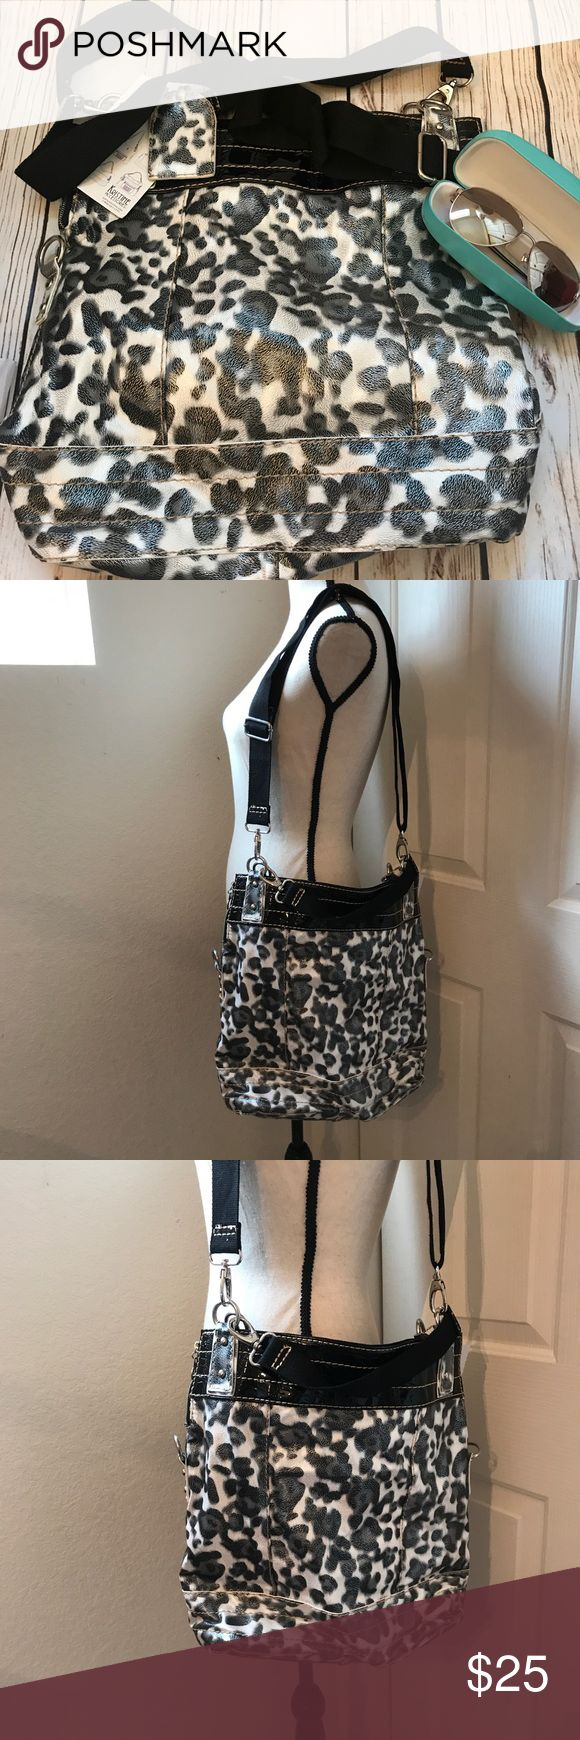 "Animal Print Tote Bag New Black & White Women's 8️⃣ 08/25/17 ⭐️️New with tags  ⭐️️adjustable long strap short strap magnetic closure ⭐️️soft velvet like interior with one small pocket  ⭐️can adjust to create several different looks  ⭐️Approx measurements laying flat: Length 14"" width 15"" Base 6"" Wide 🚫trades, holds or modeling please Bags Totes"